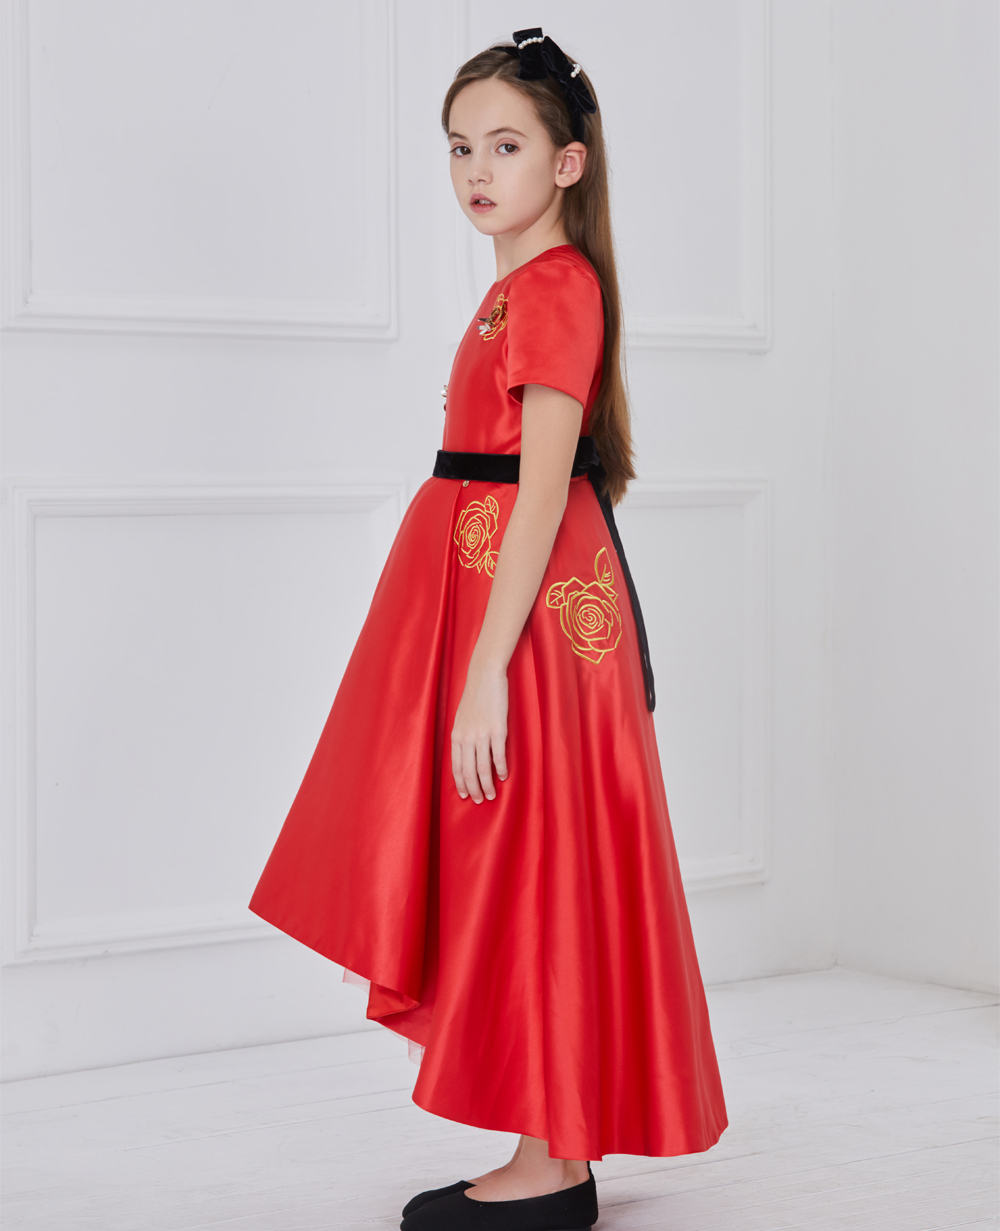 Red Satin Long Dress